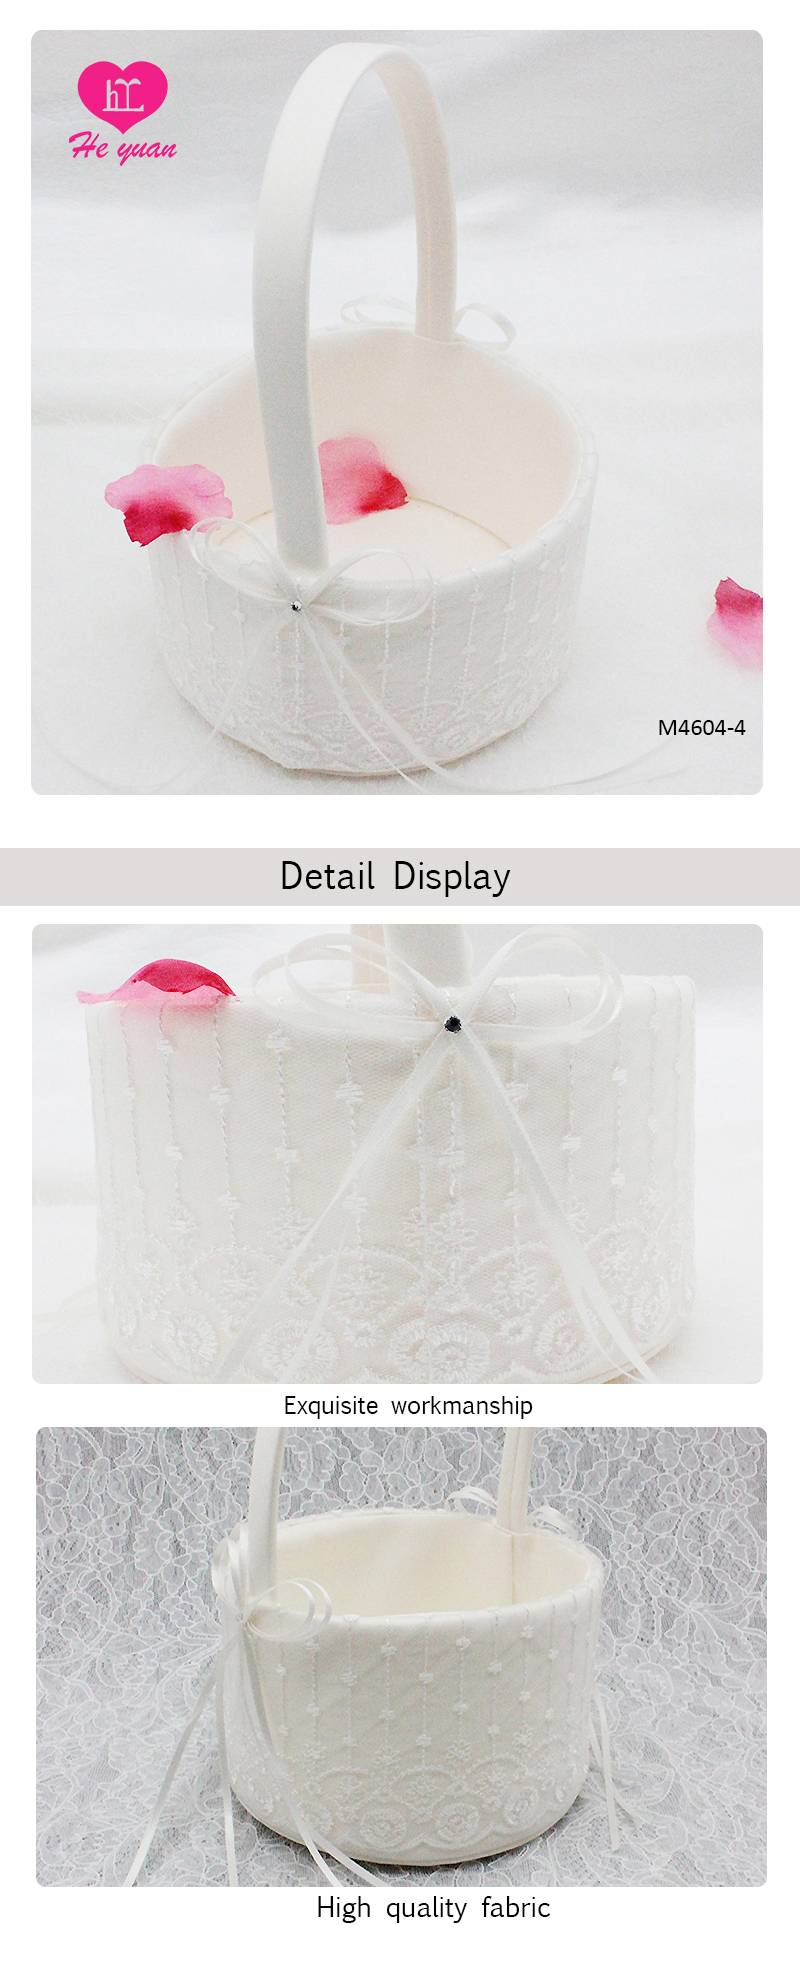 M4604 Flower Basket White Lace Wedding with Lovely Bowknot